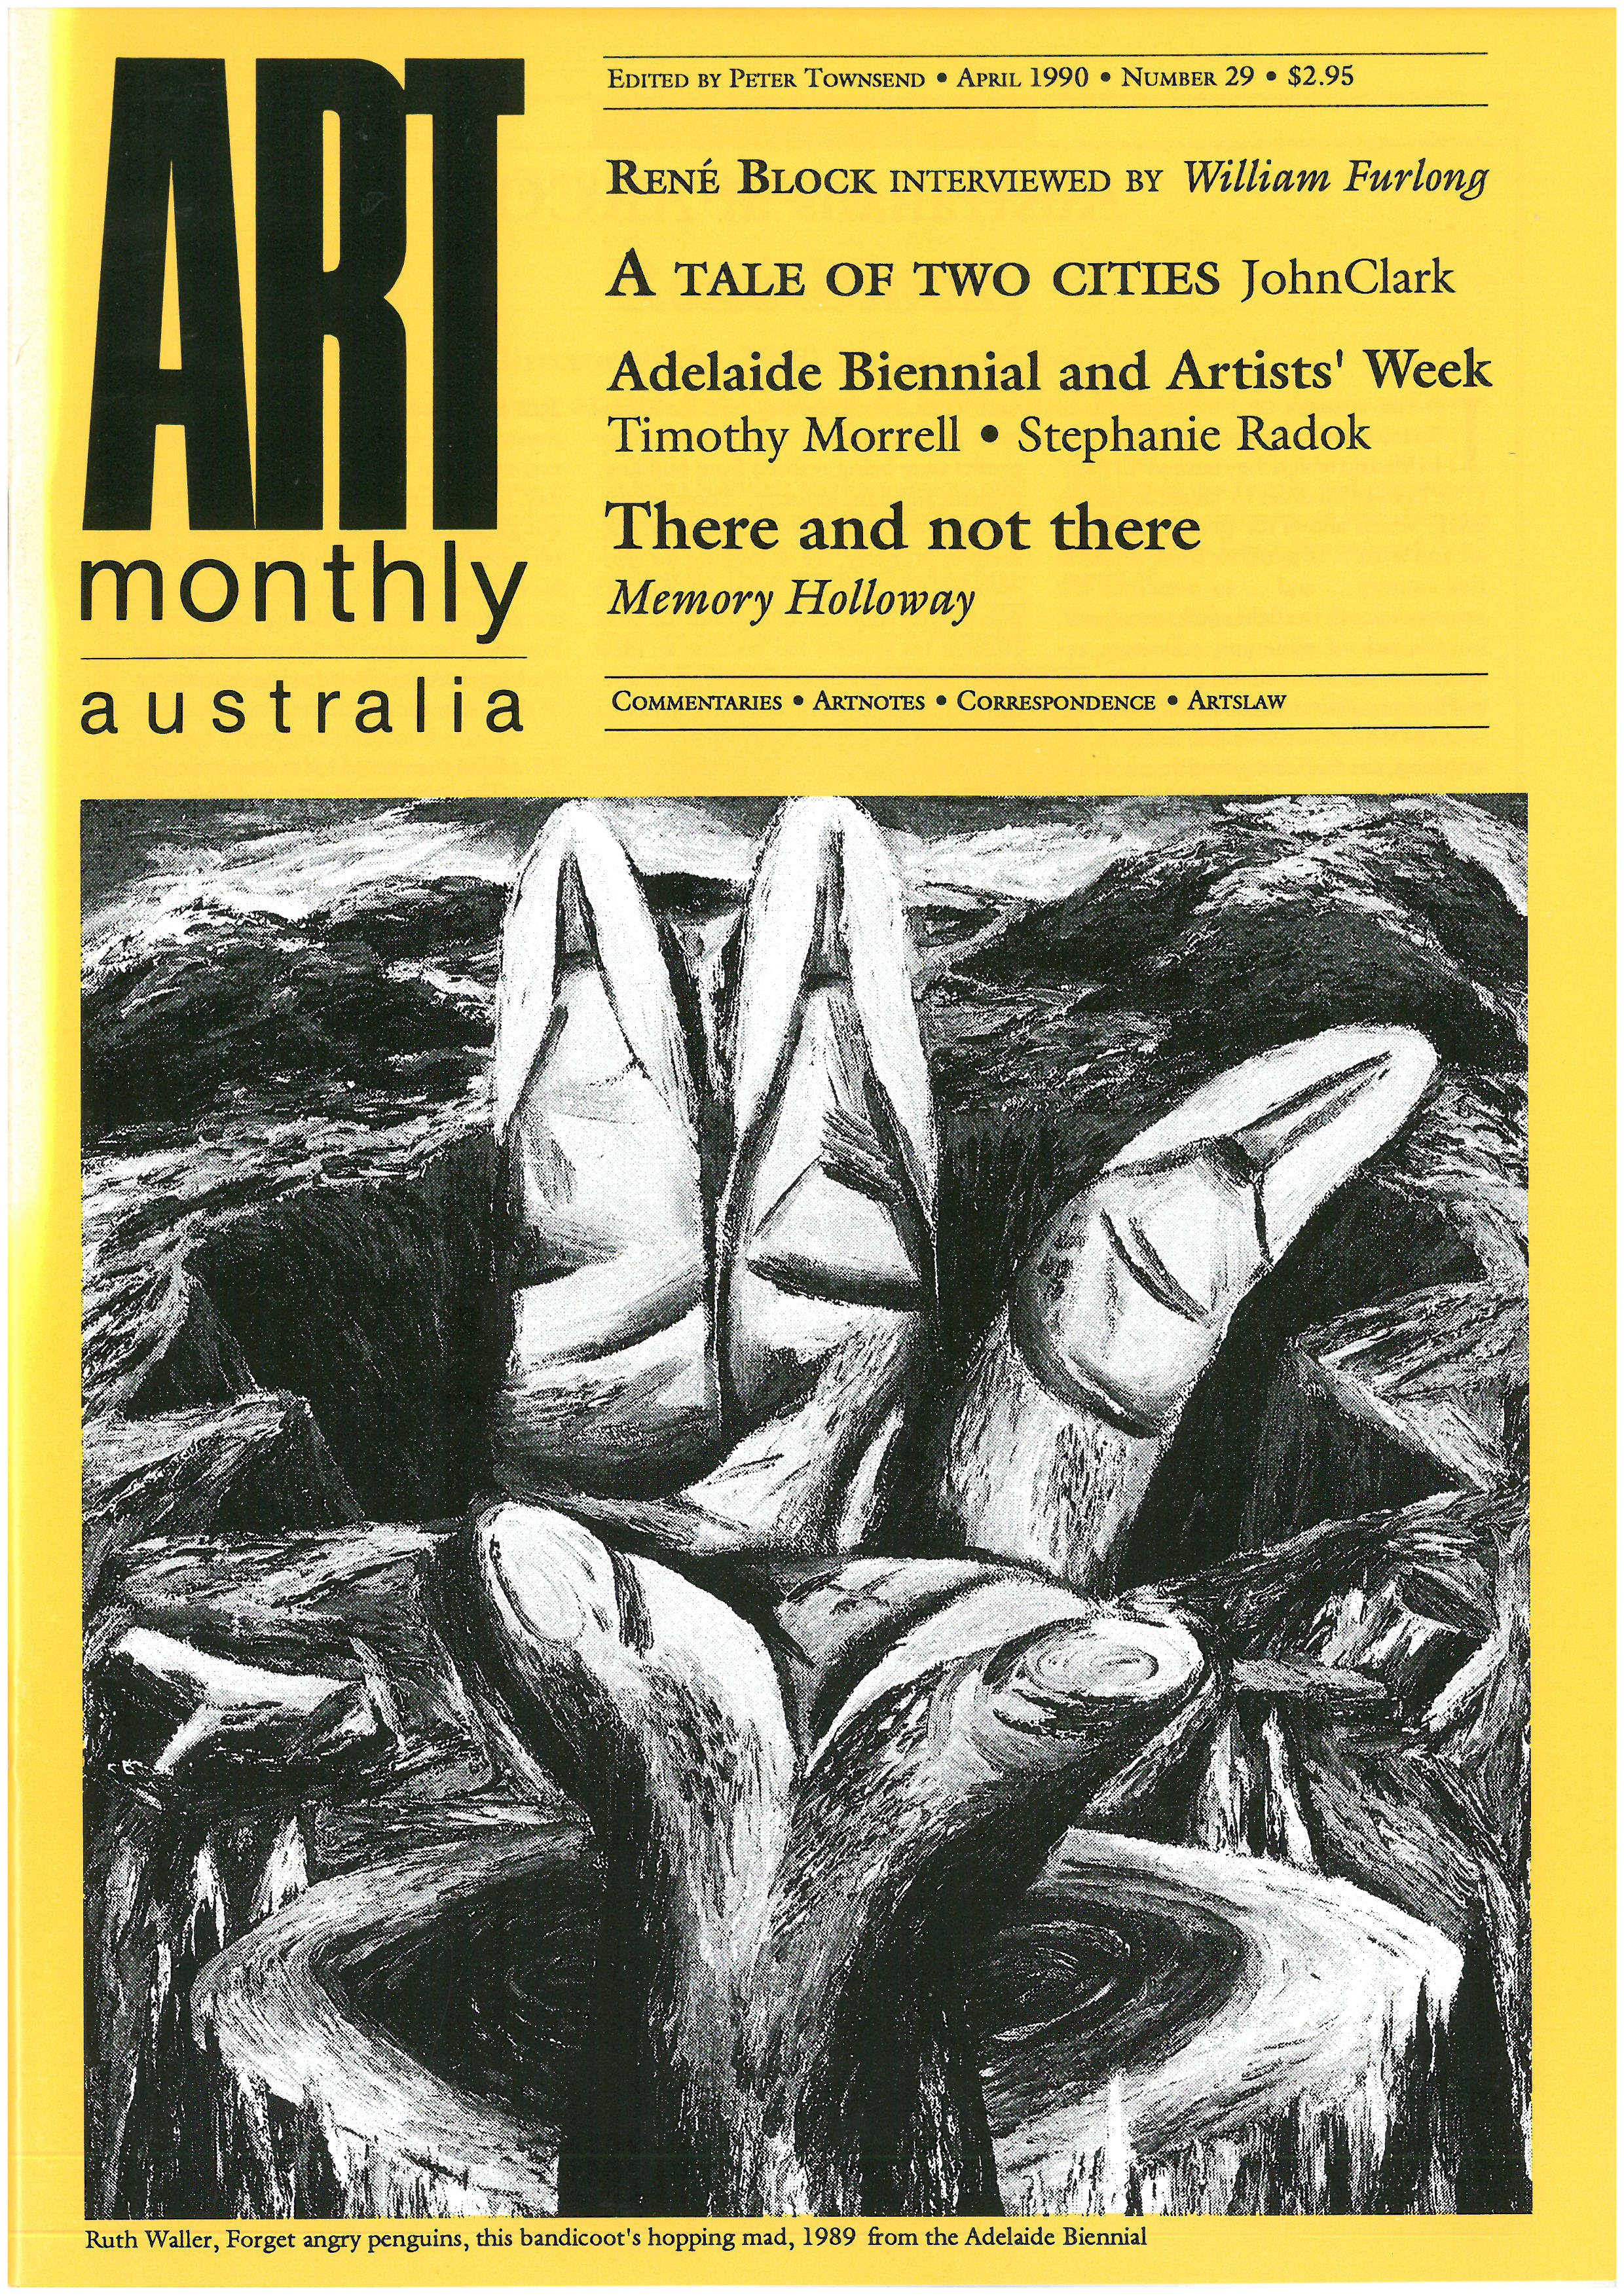 Issue 29 April 1990